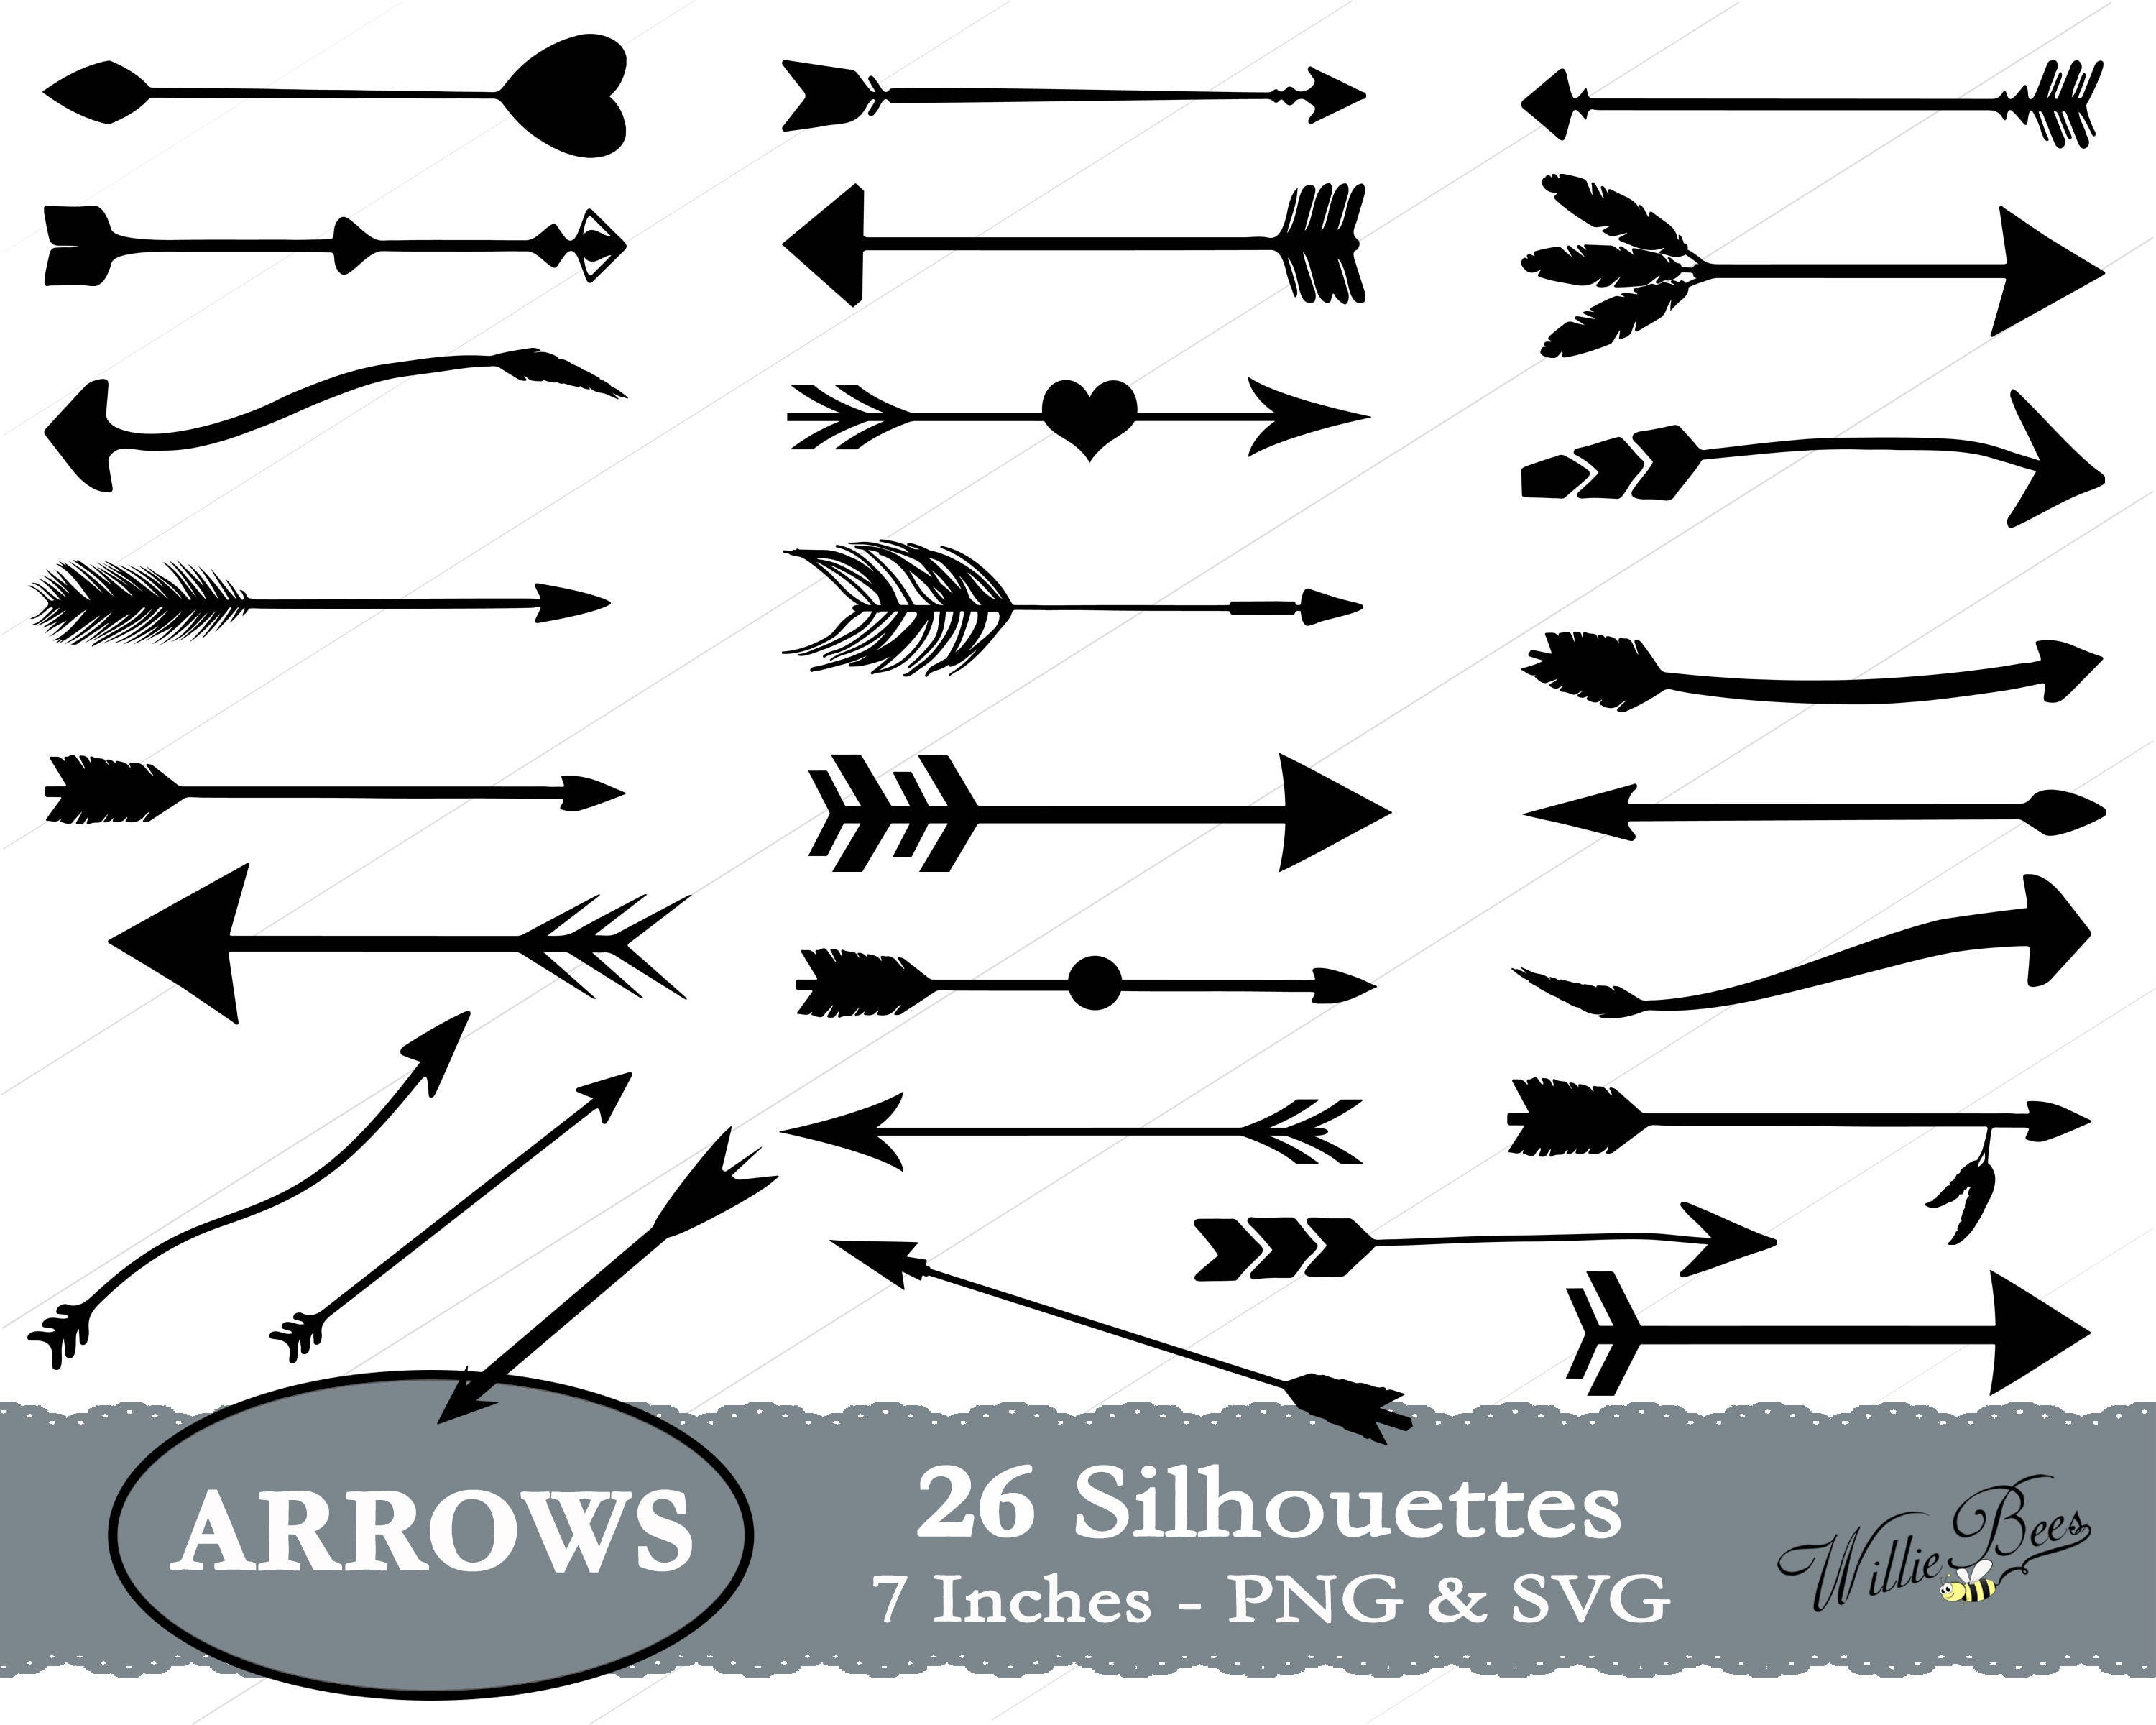 arrow svg arrow silhouette tribal arrows arrow clipart etsy rh etsy com tribal arrow vector free Indian Arrow Vector